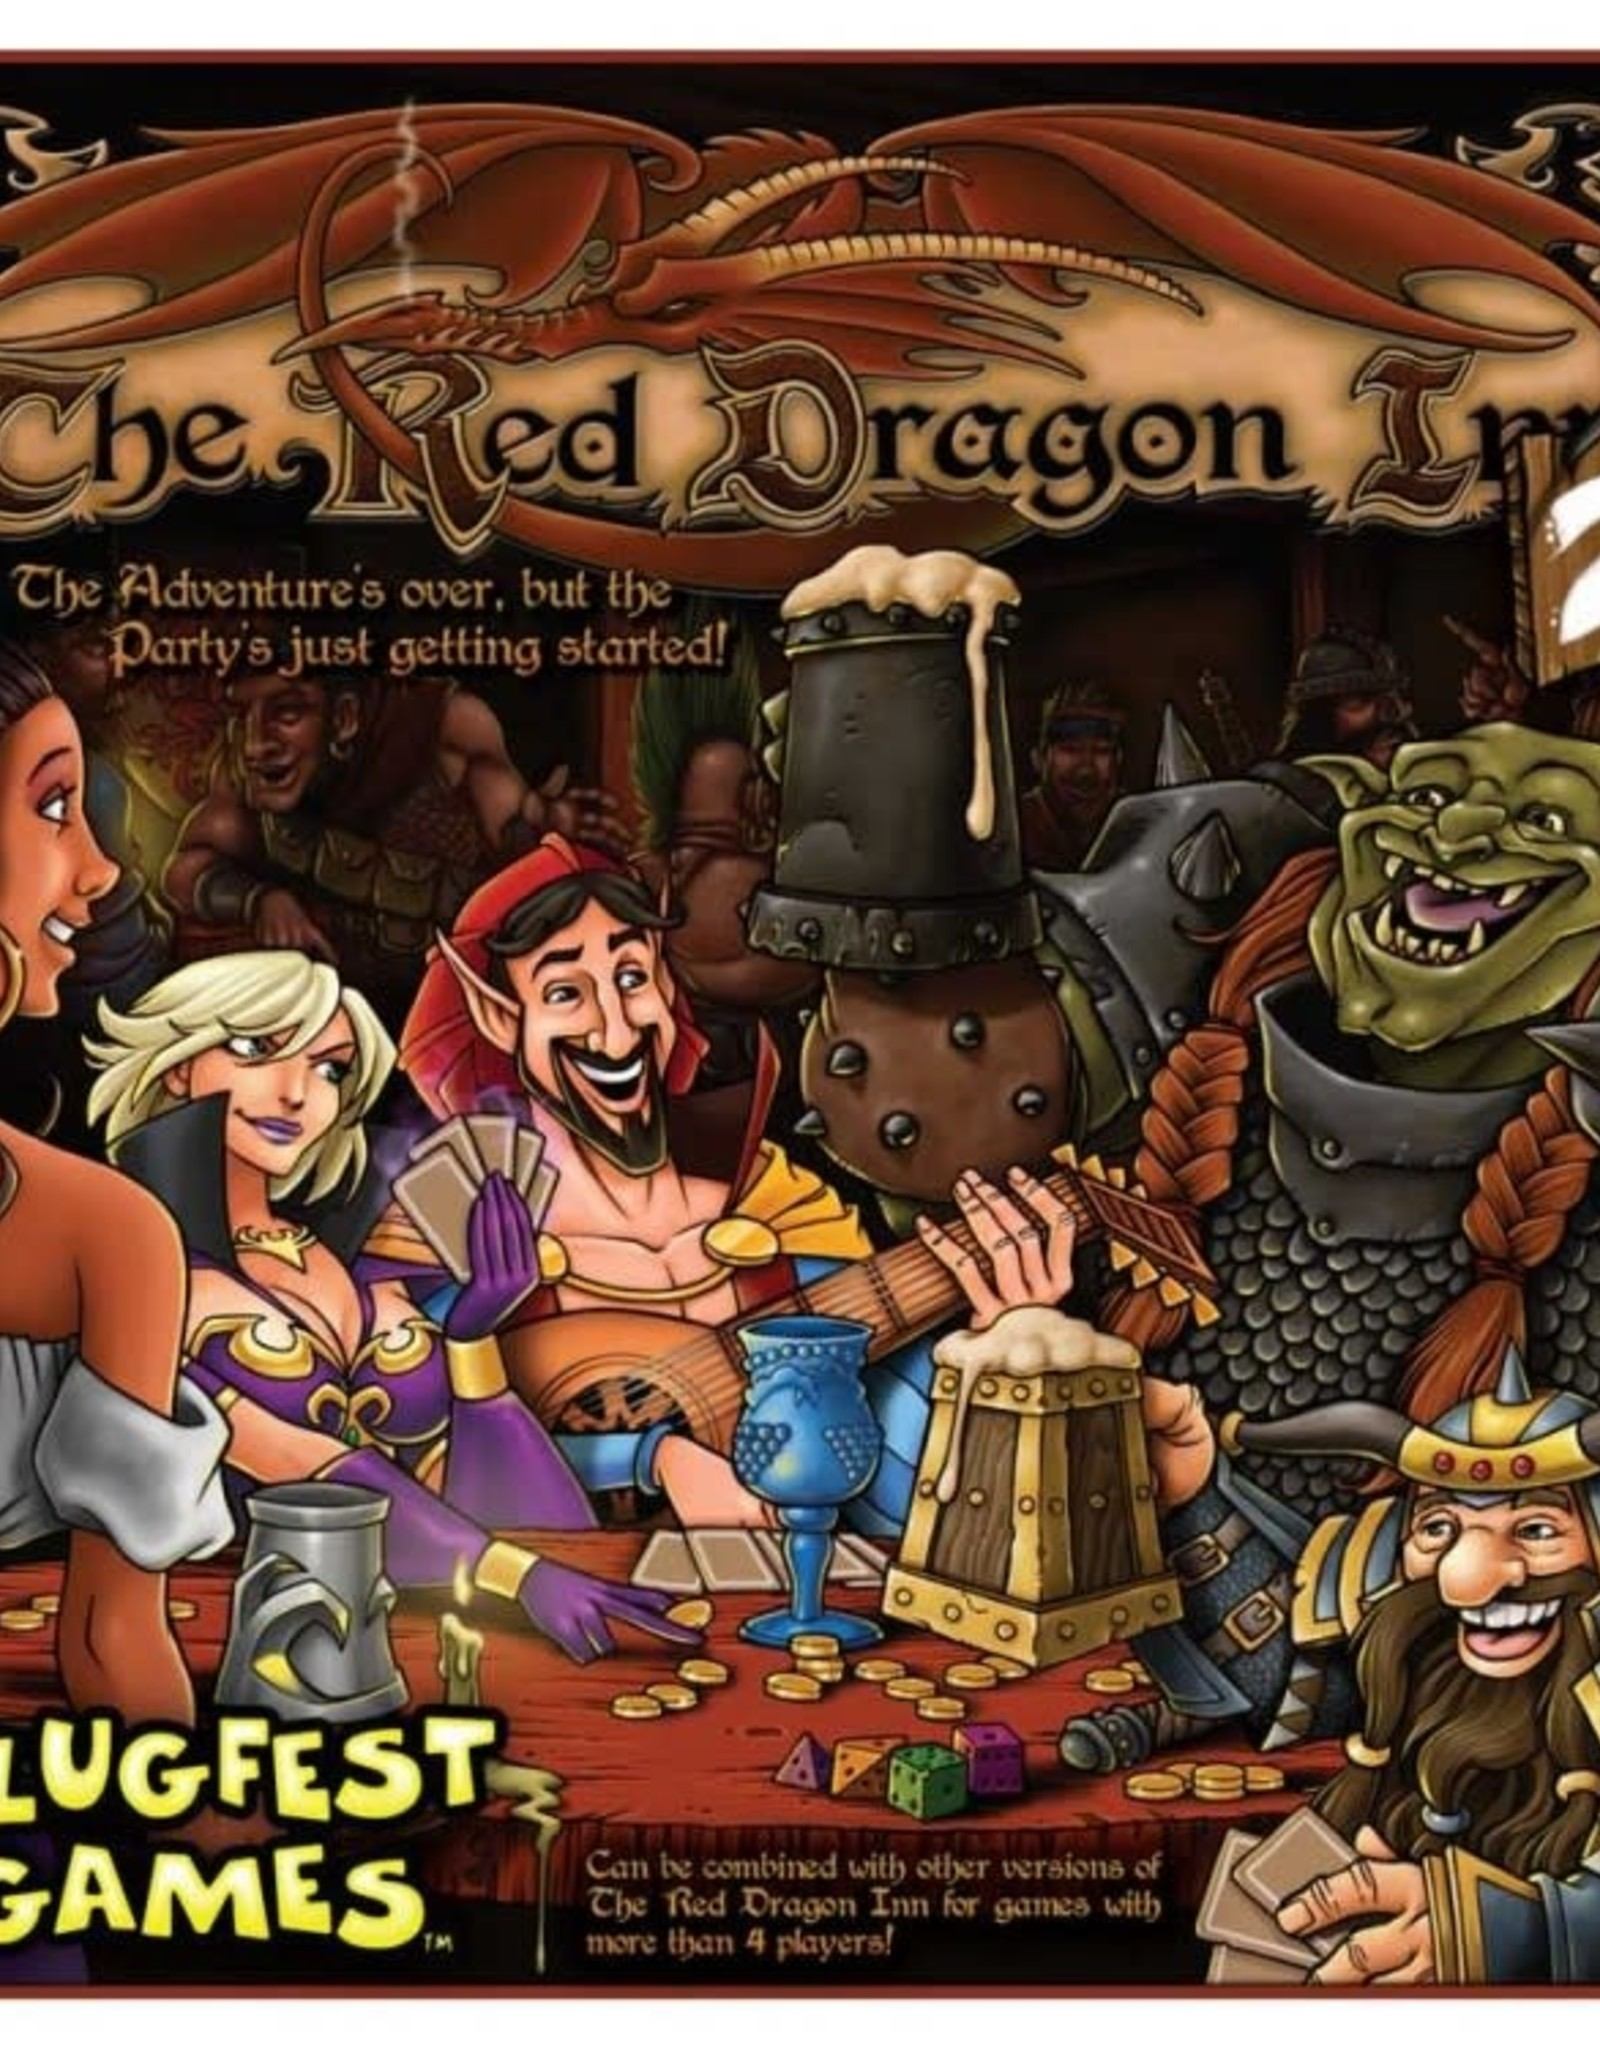 Slugfest Games Red Dragon Inn 2